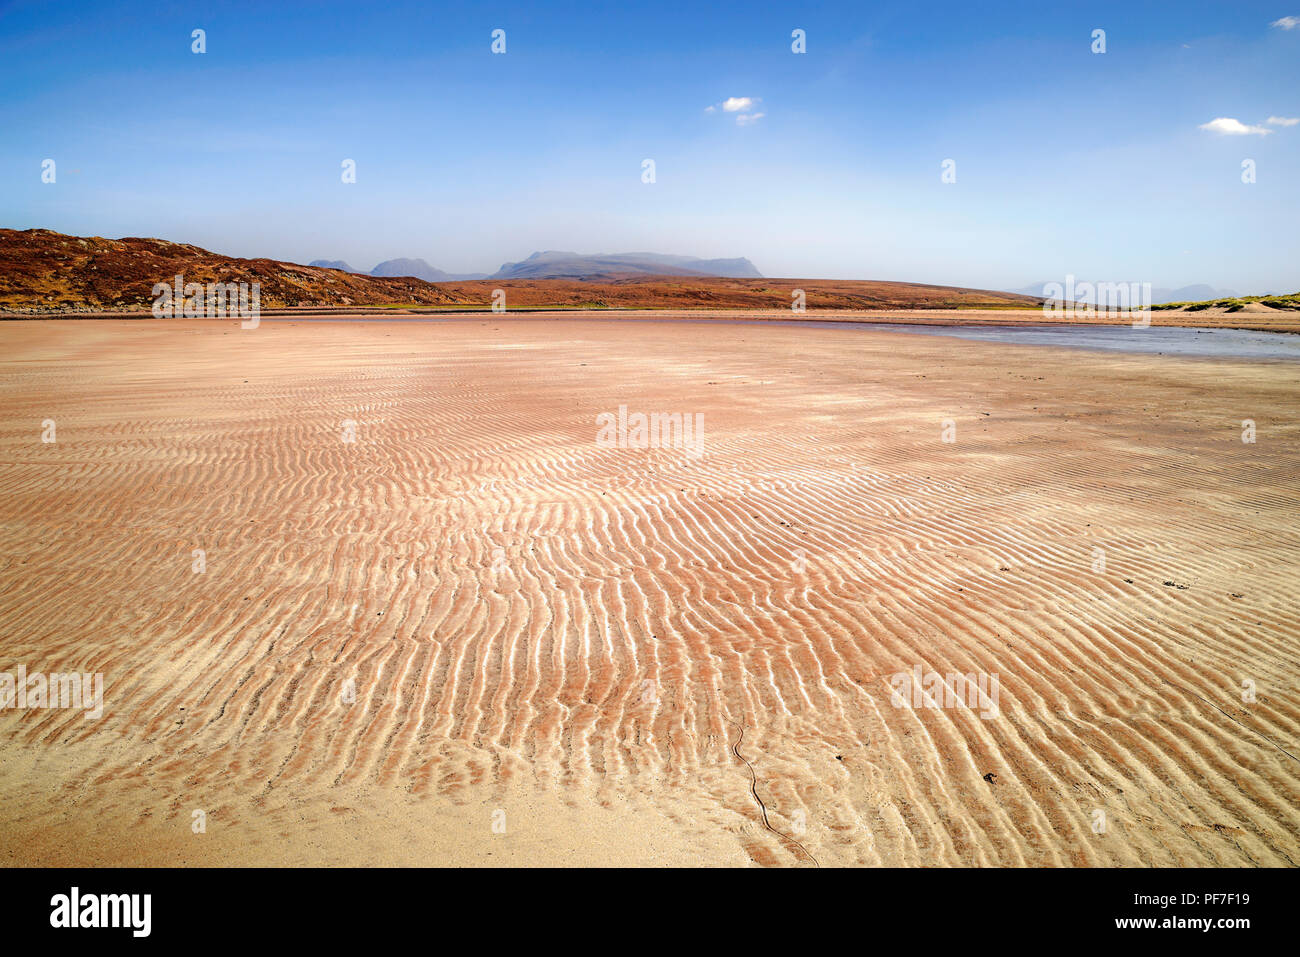 Sand ripples on beautiful remote sandy beach, Achnahaird Bay, Coigach, Wester Ross, Scottish Highlands, Ben More Coigach visible on hazy horizon. - Stock Image